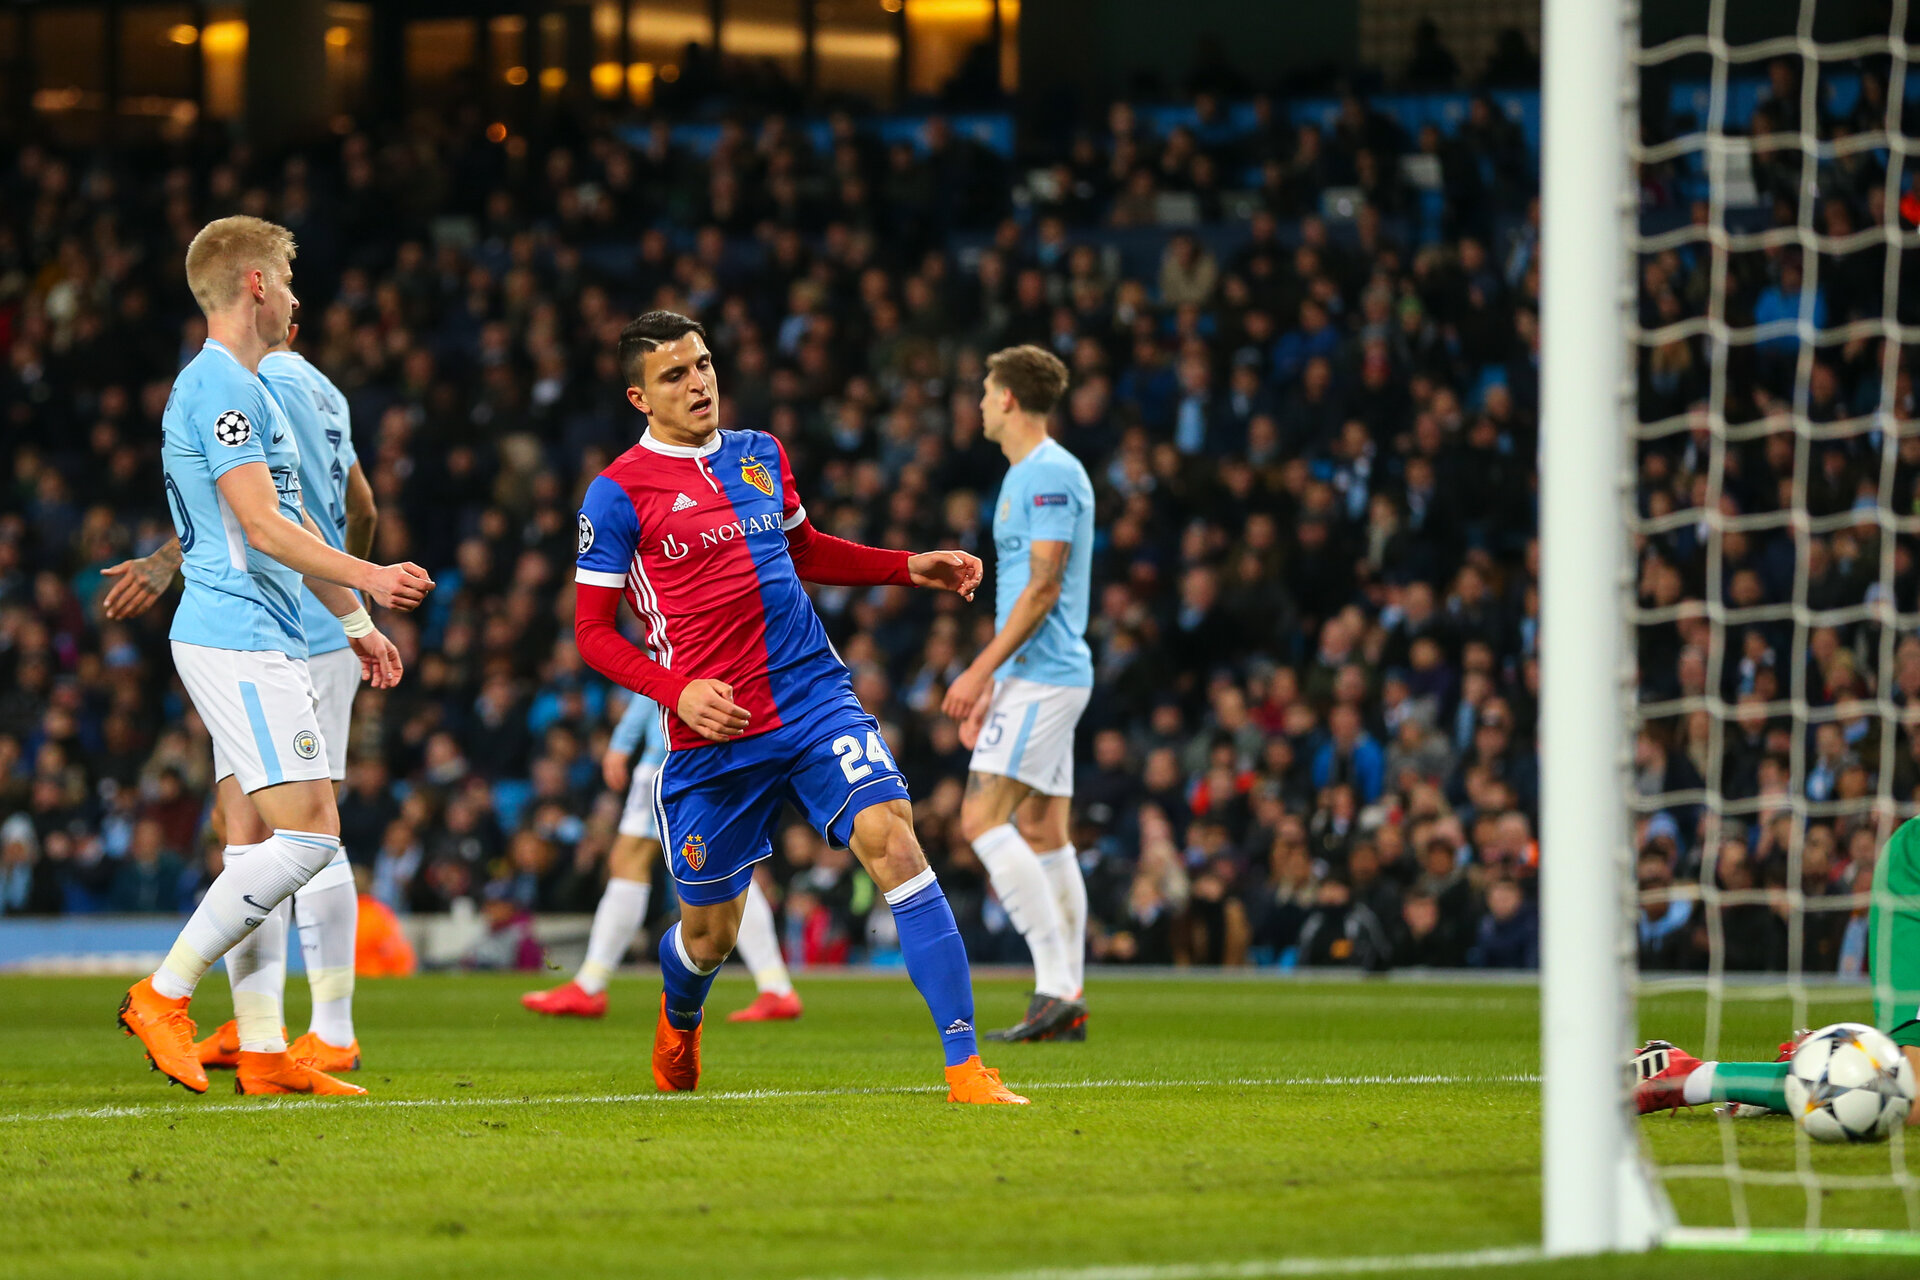 MANCHESTER, ENGLAND - MARCH 07: Mohamed Elyounoussi of FC Basel scores a goal to make it 1-1 during the UEFA Champions League Round of 16 Second Leg match between Manchester City and FC Basel at Etihad Stadium on March 7, 2018 in Manchester, United Kingdom. (Photo by Robbie Jay Barratt - AMA/Getty Images)